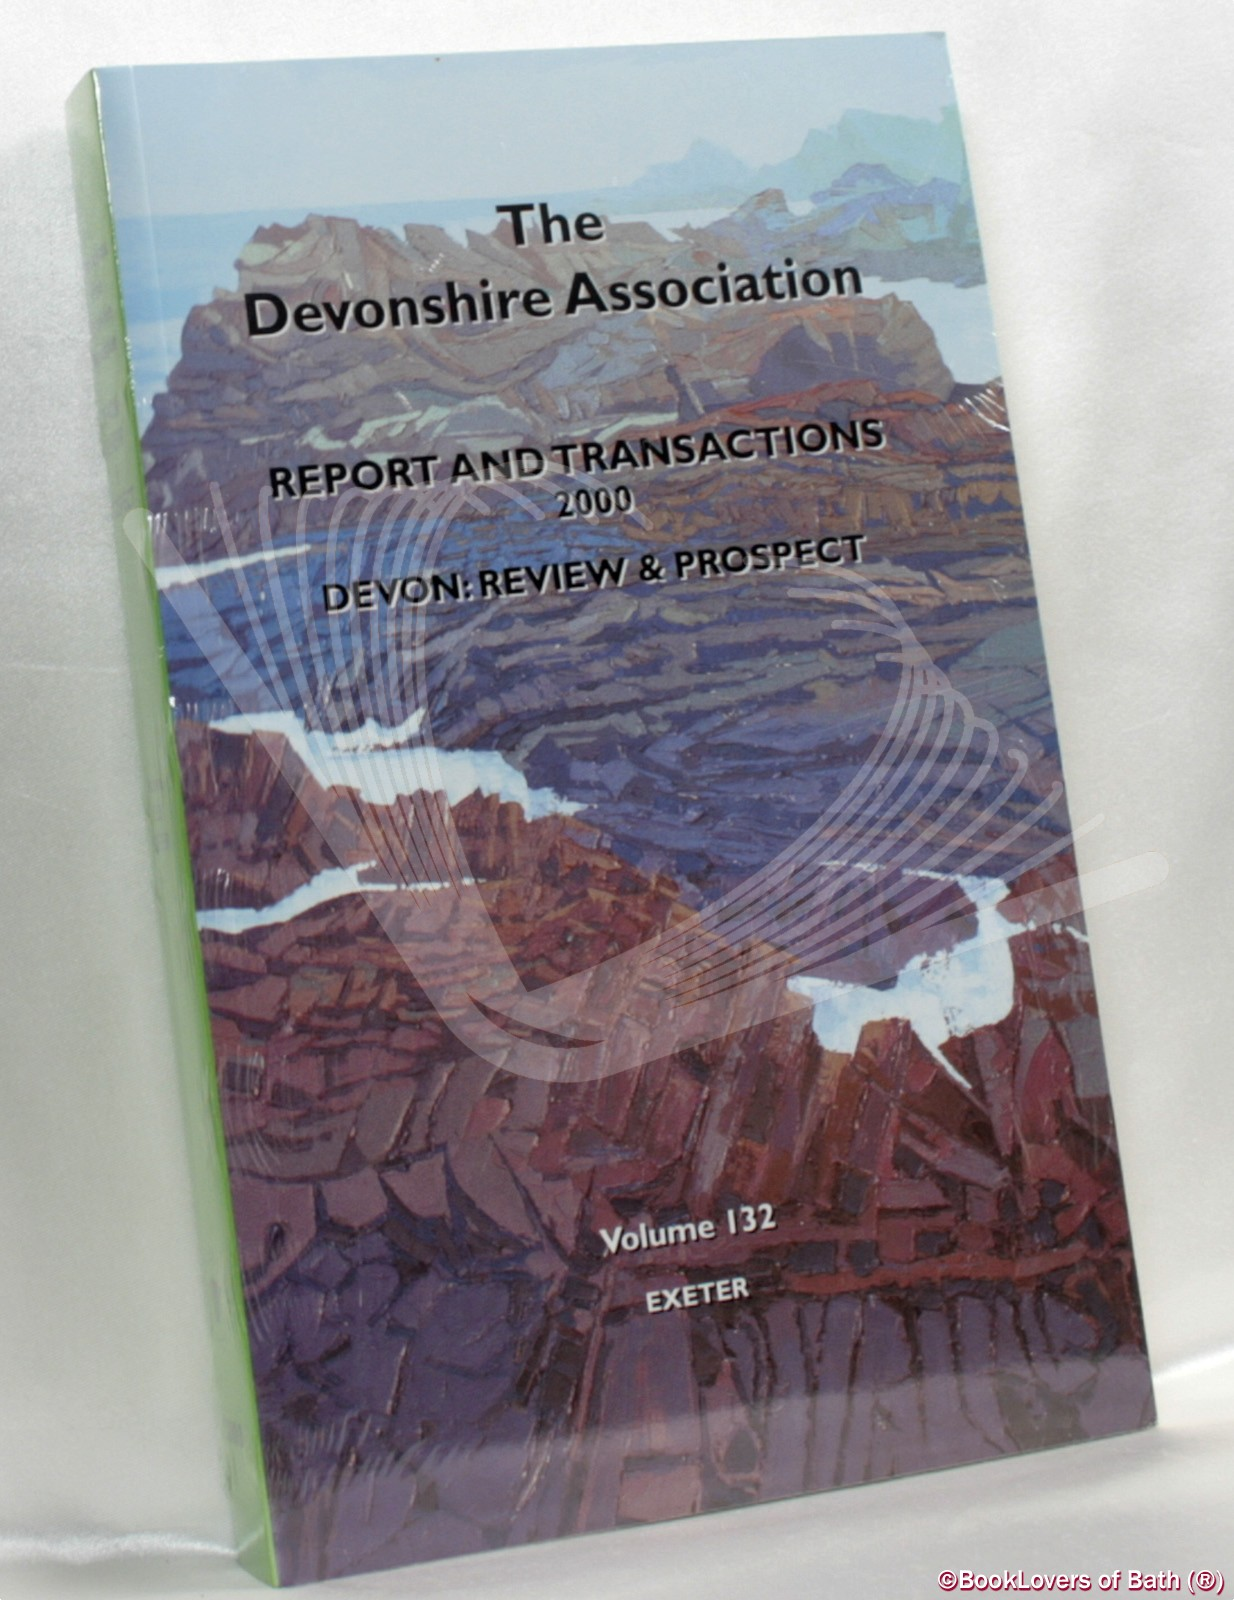 Report and Transactions of the Devonshire Association for the Advancement of Science, Literature and Art: Volume 132 Exeter 2000 - Anon.